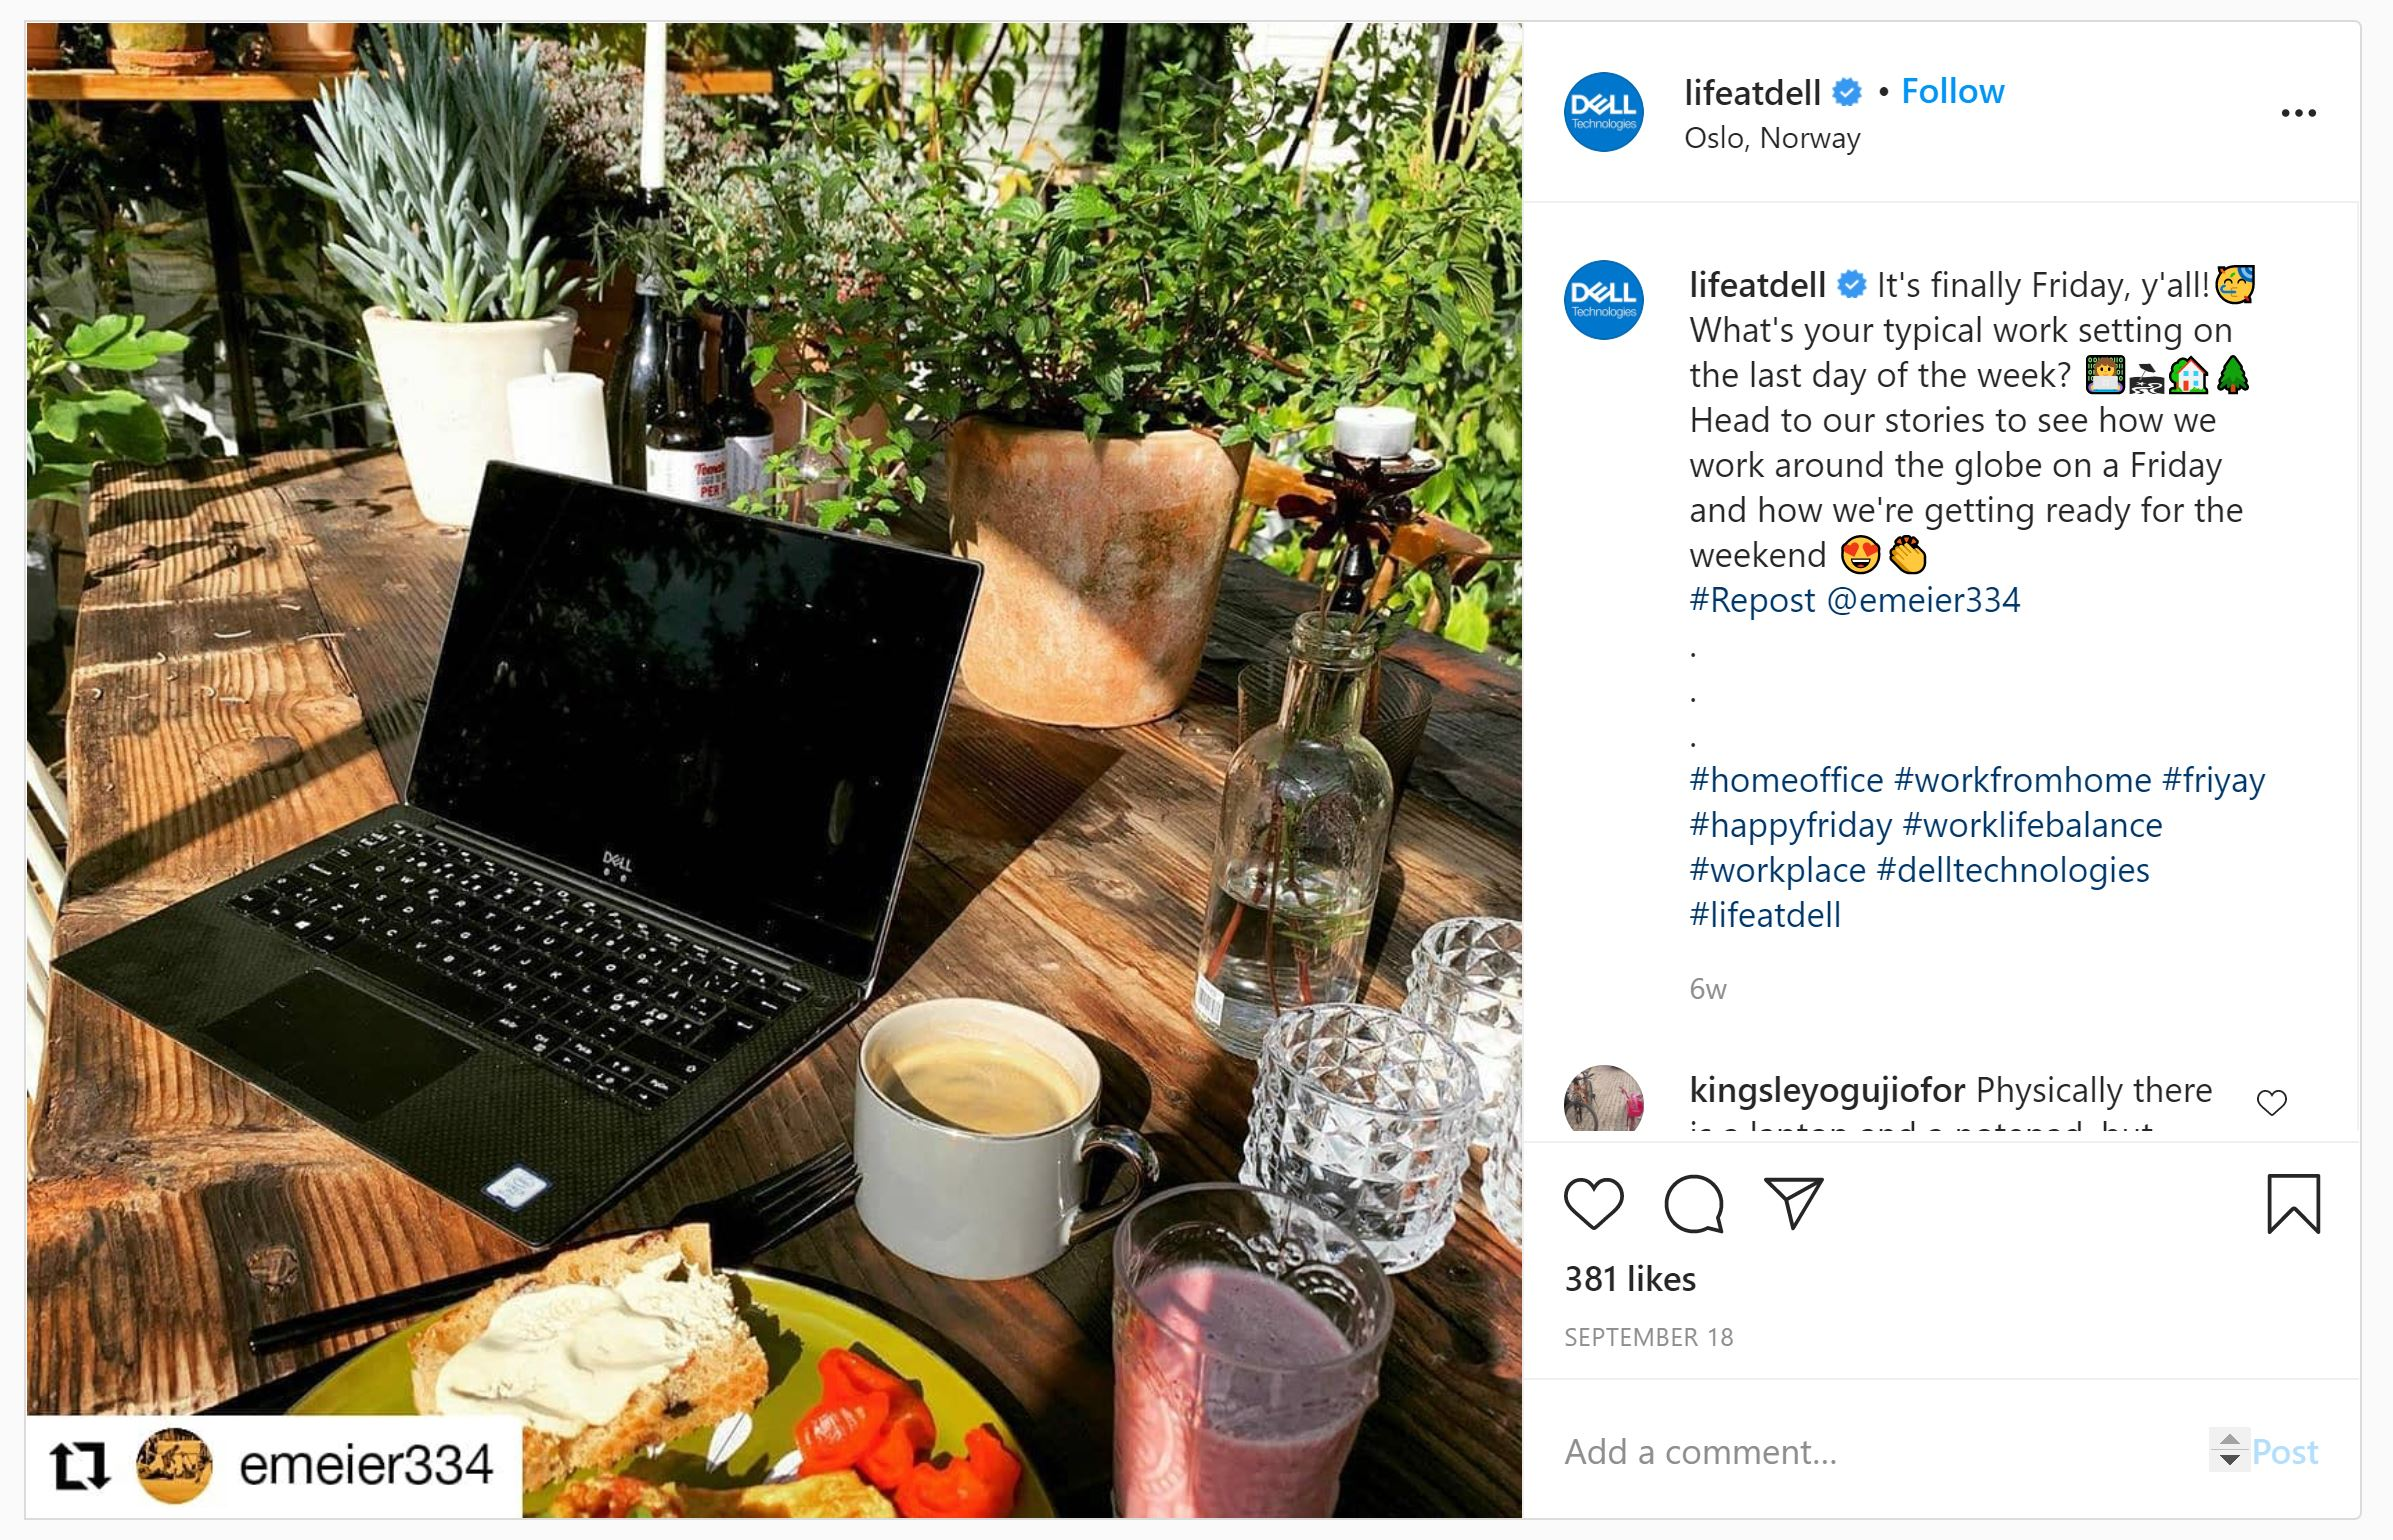 Life at Dell on Instagram